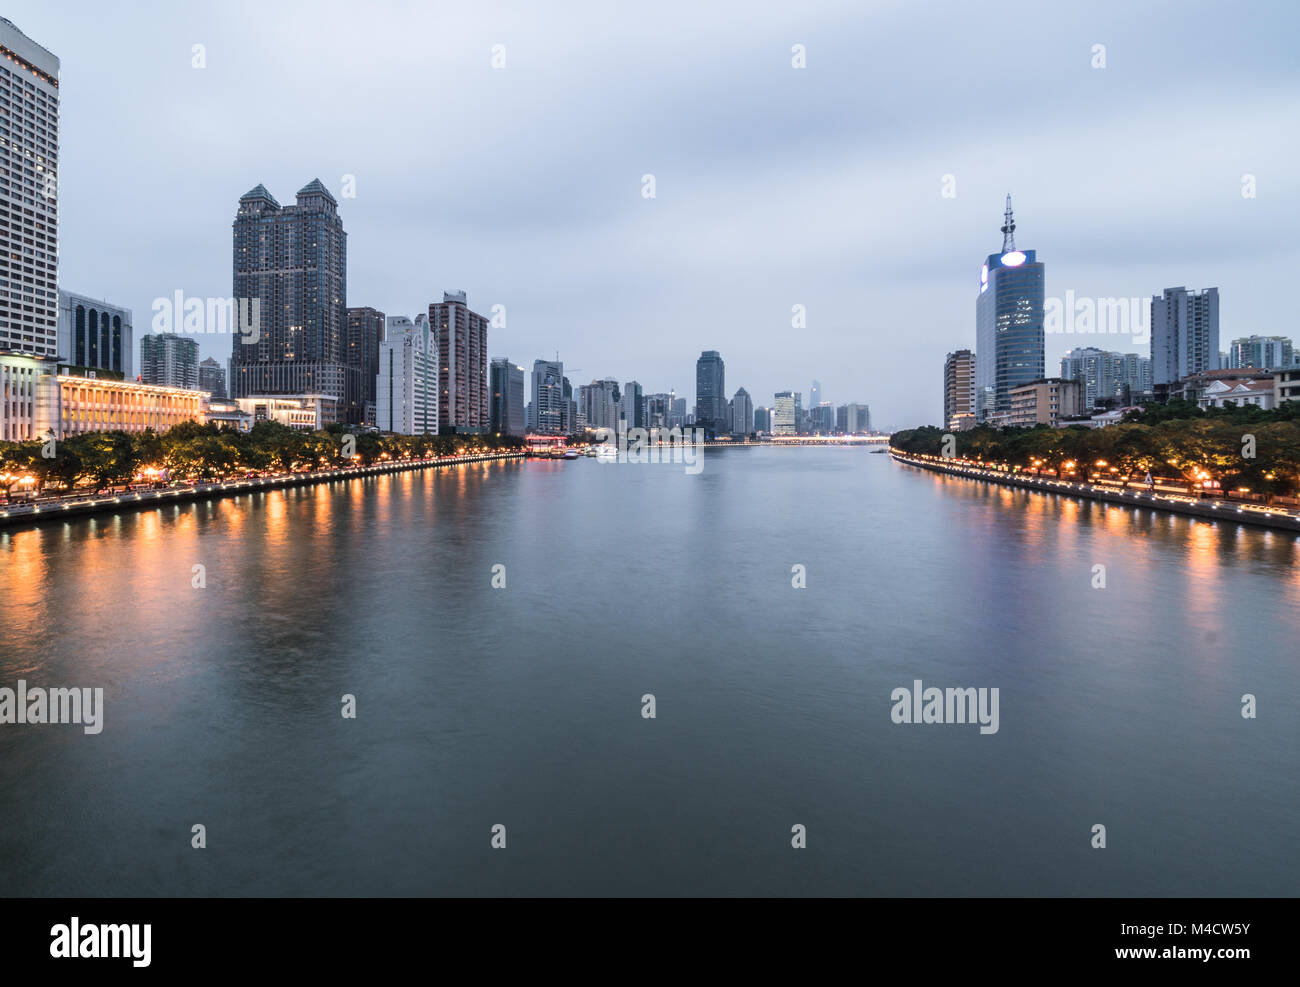 The Pearl river that crosses the Guangzhou downtown district in Guangdong province in China at twilight - Stock Image